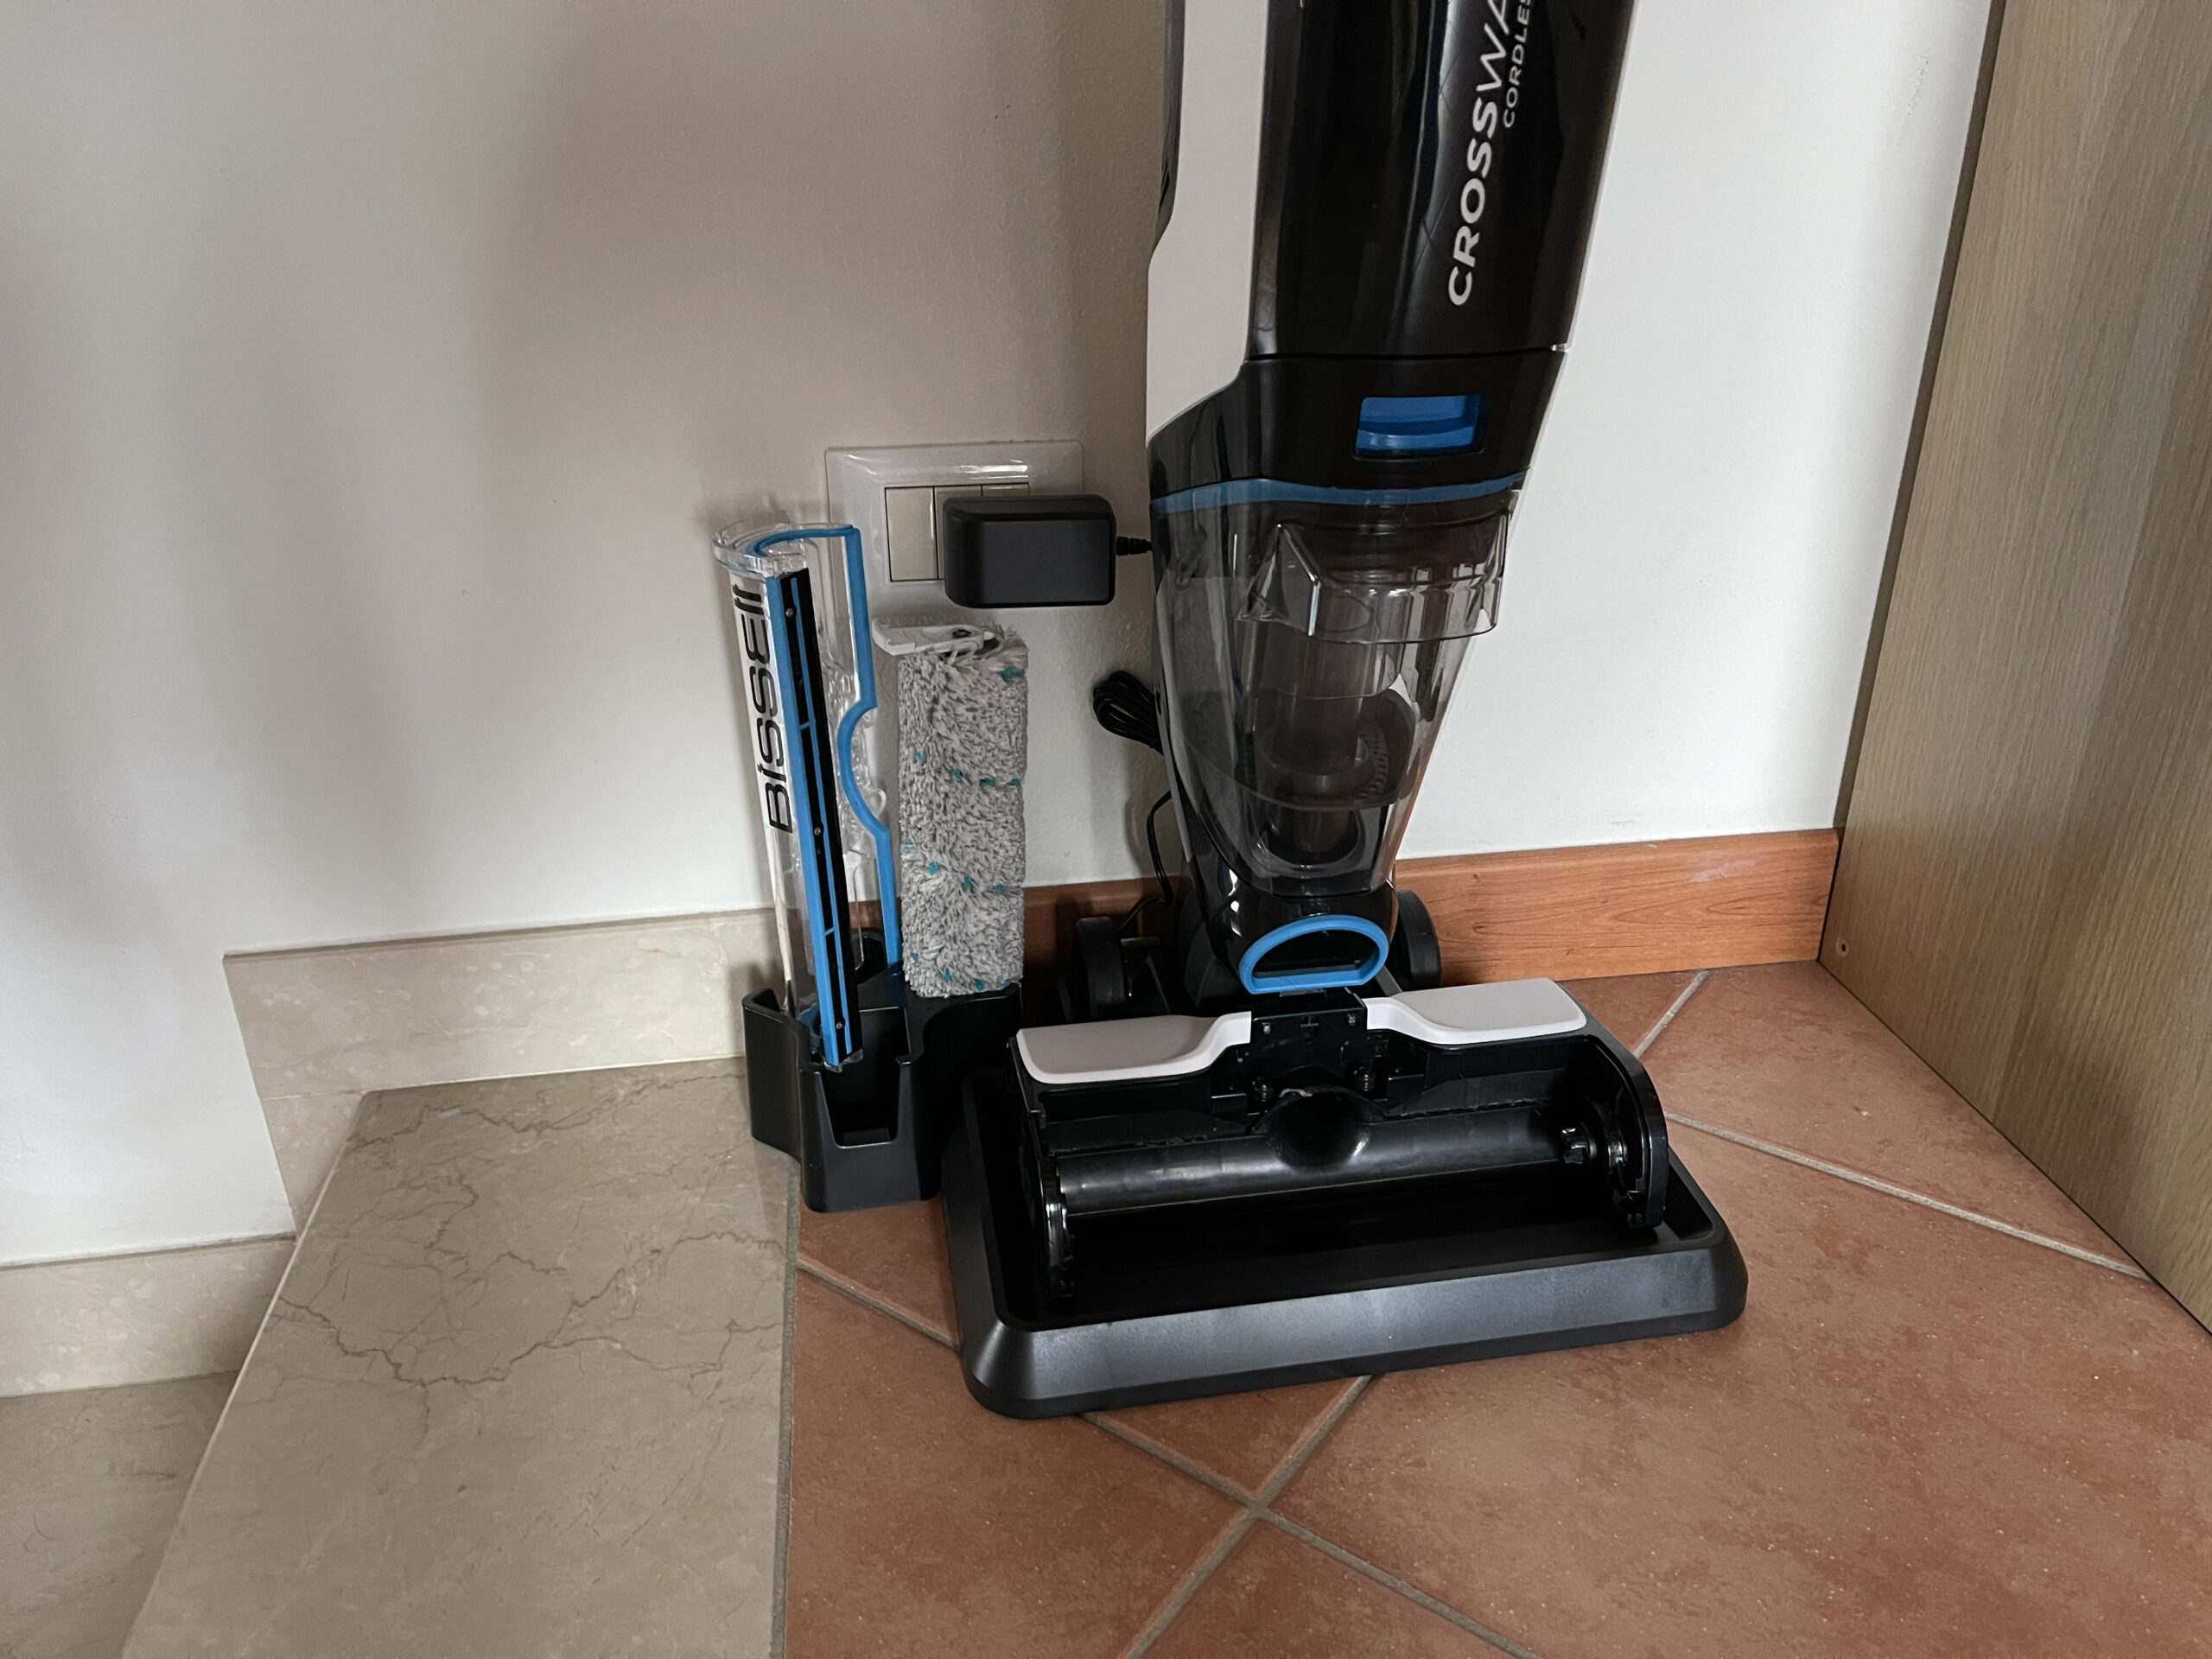 Bissell CrossWave Cordless Max post utilizzo in ricarica